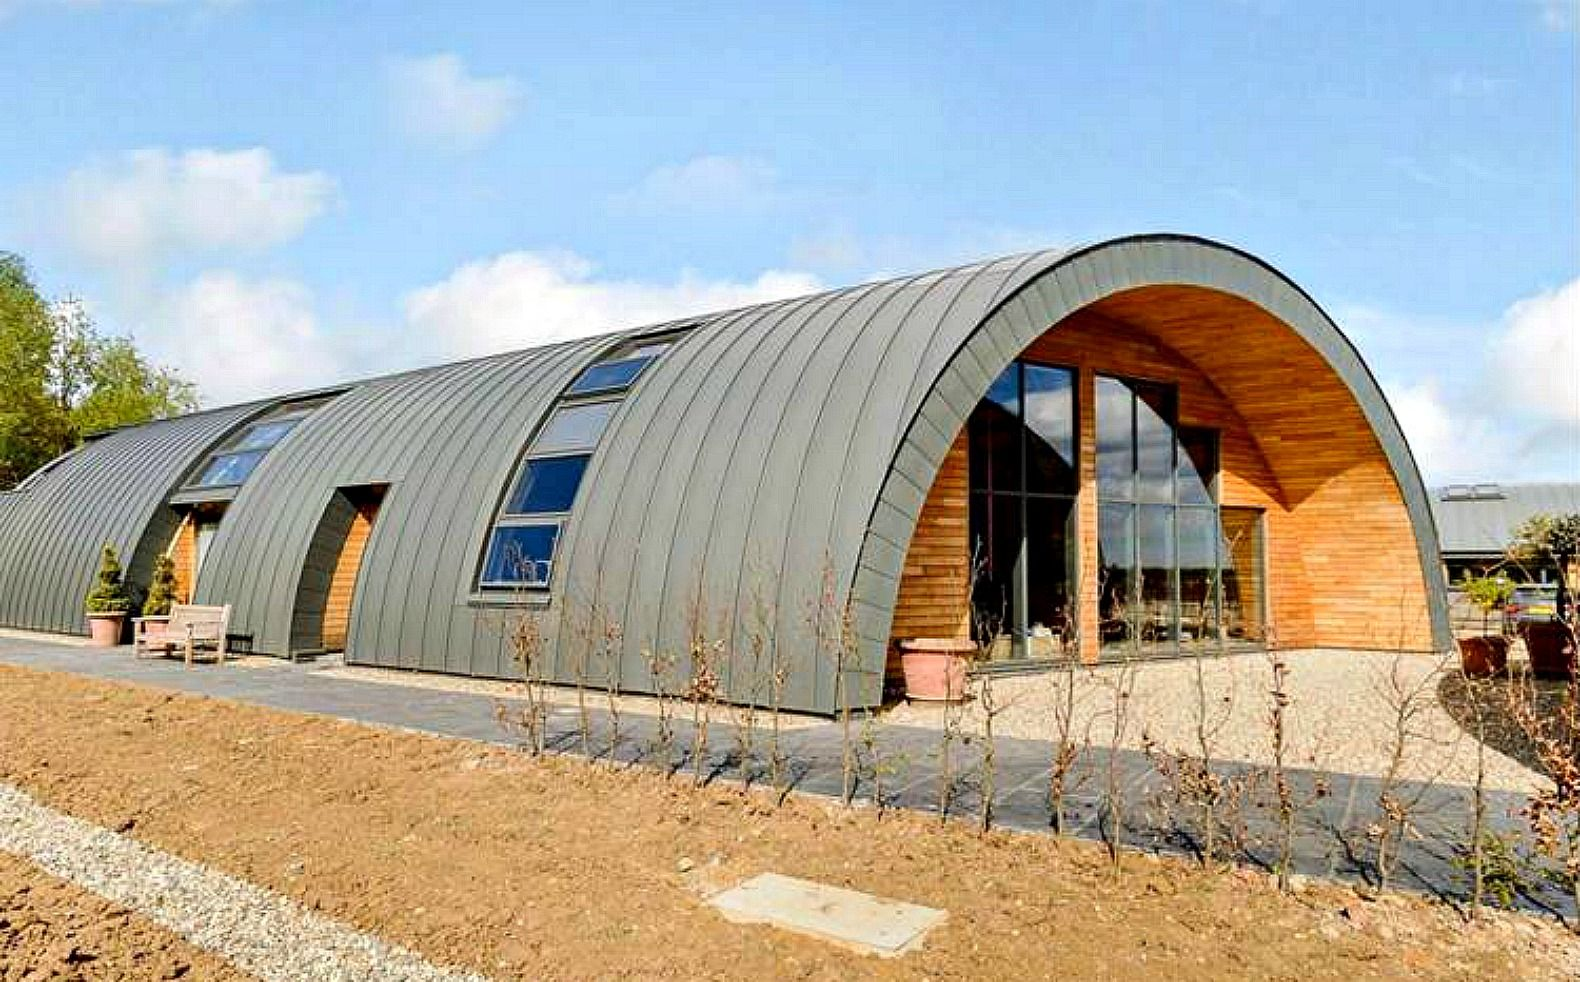 Military Surplus Quonset Huts For Sale >> Military Surplus Quonset Huts For Sale Best Car Update 2019 2020